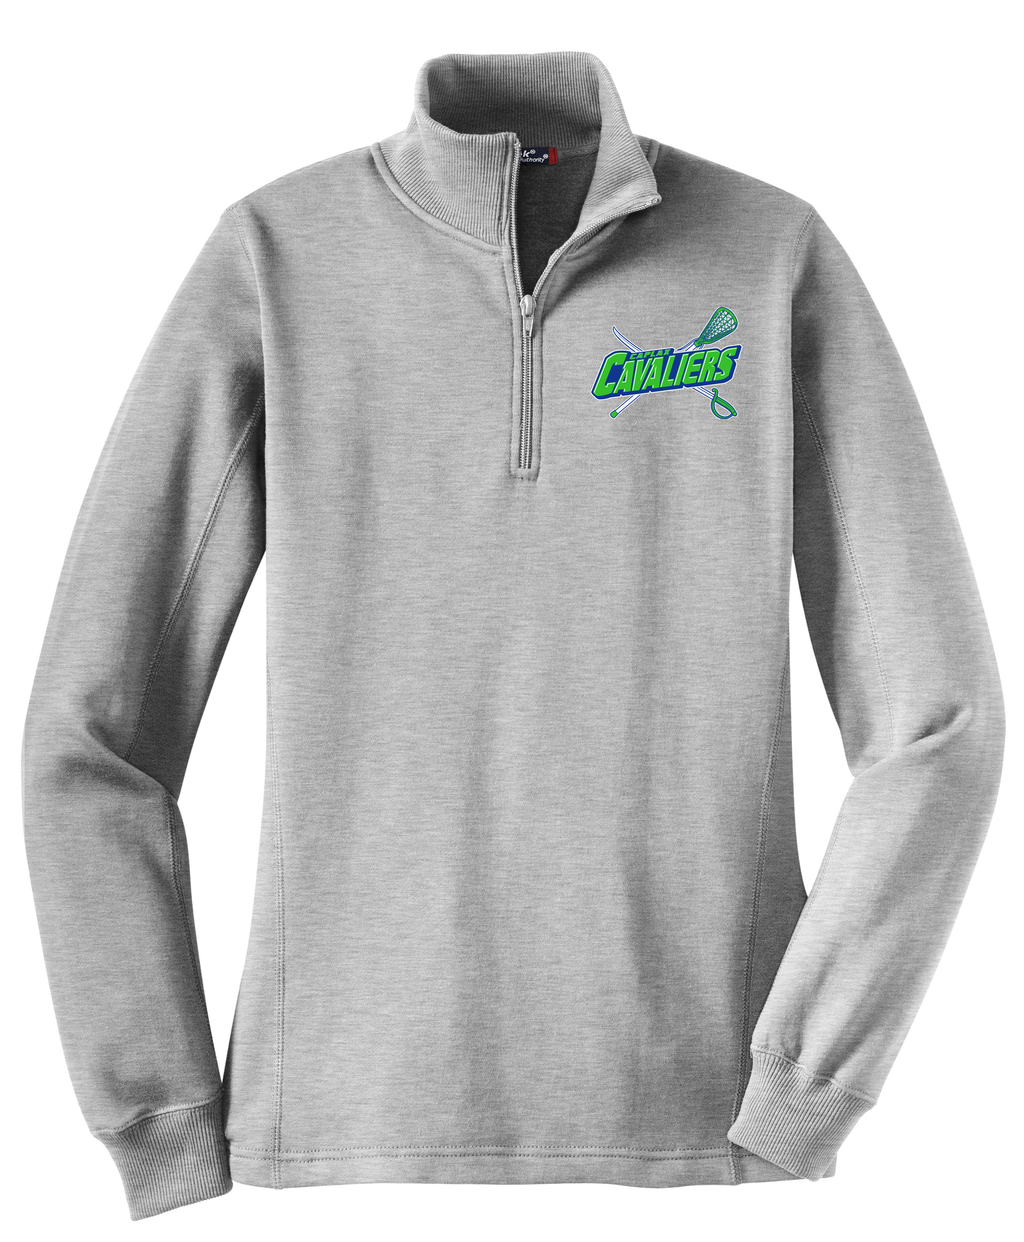 Cavaliers Lacrosse Women's 1/4 Zip Fleece